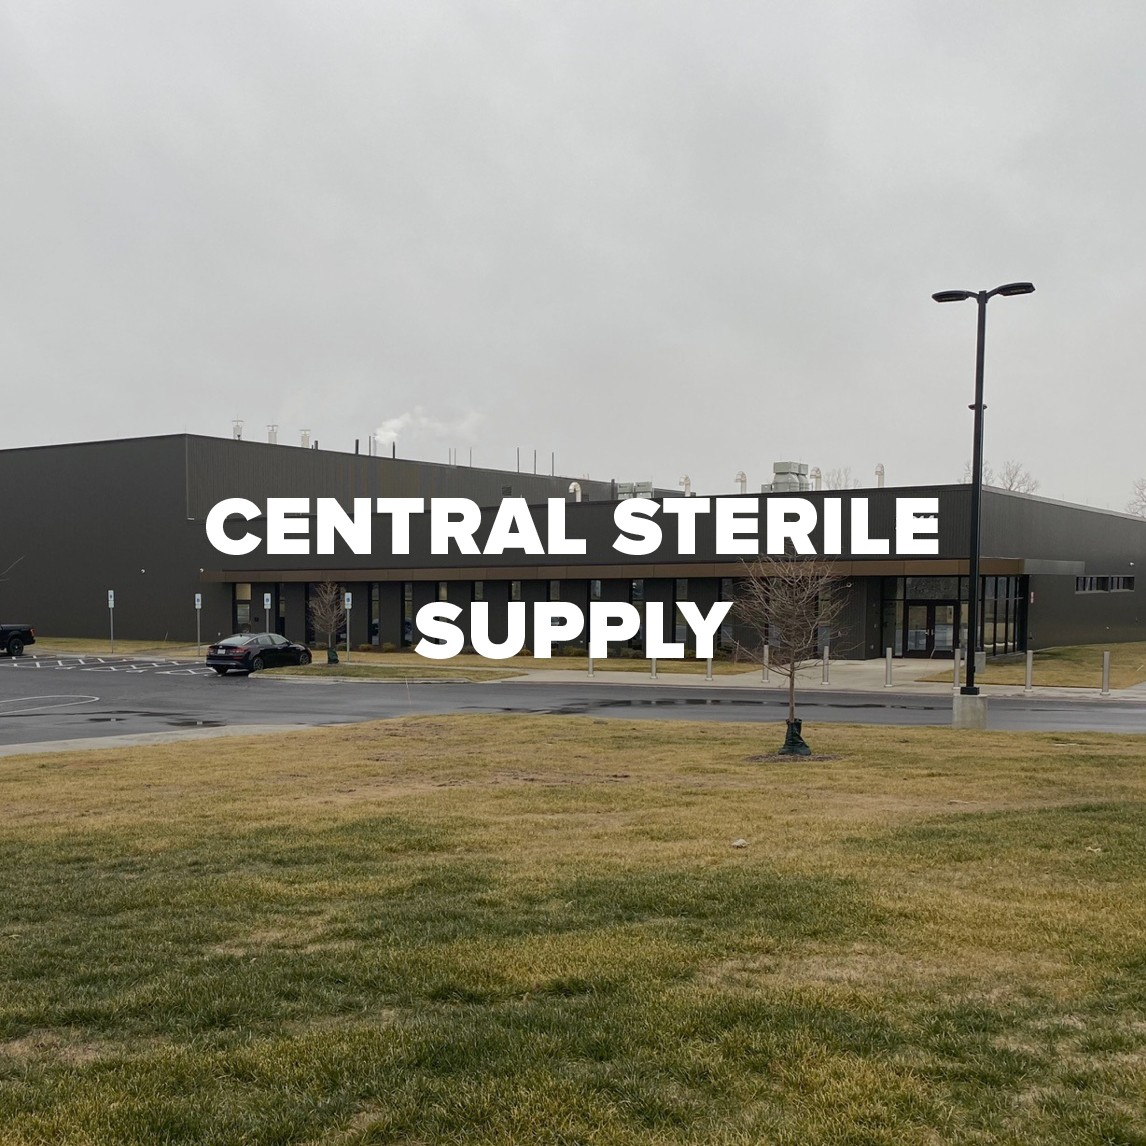 Central Sterile Supply